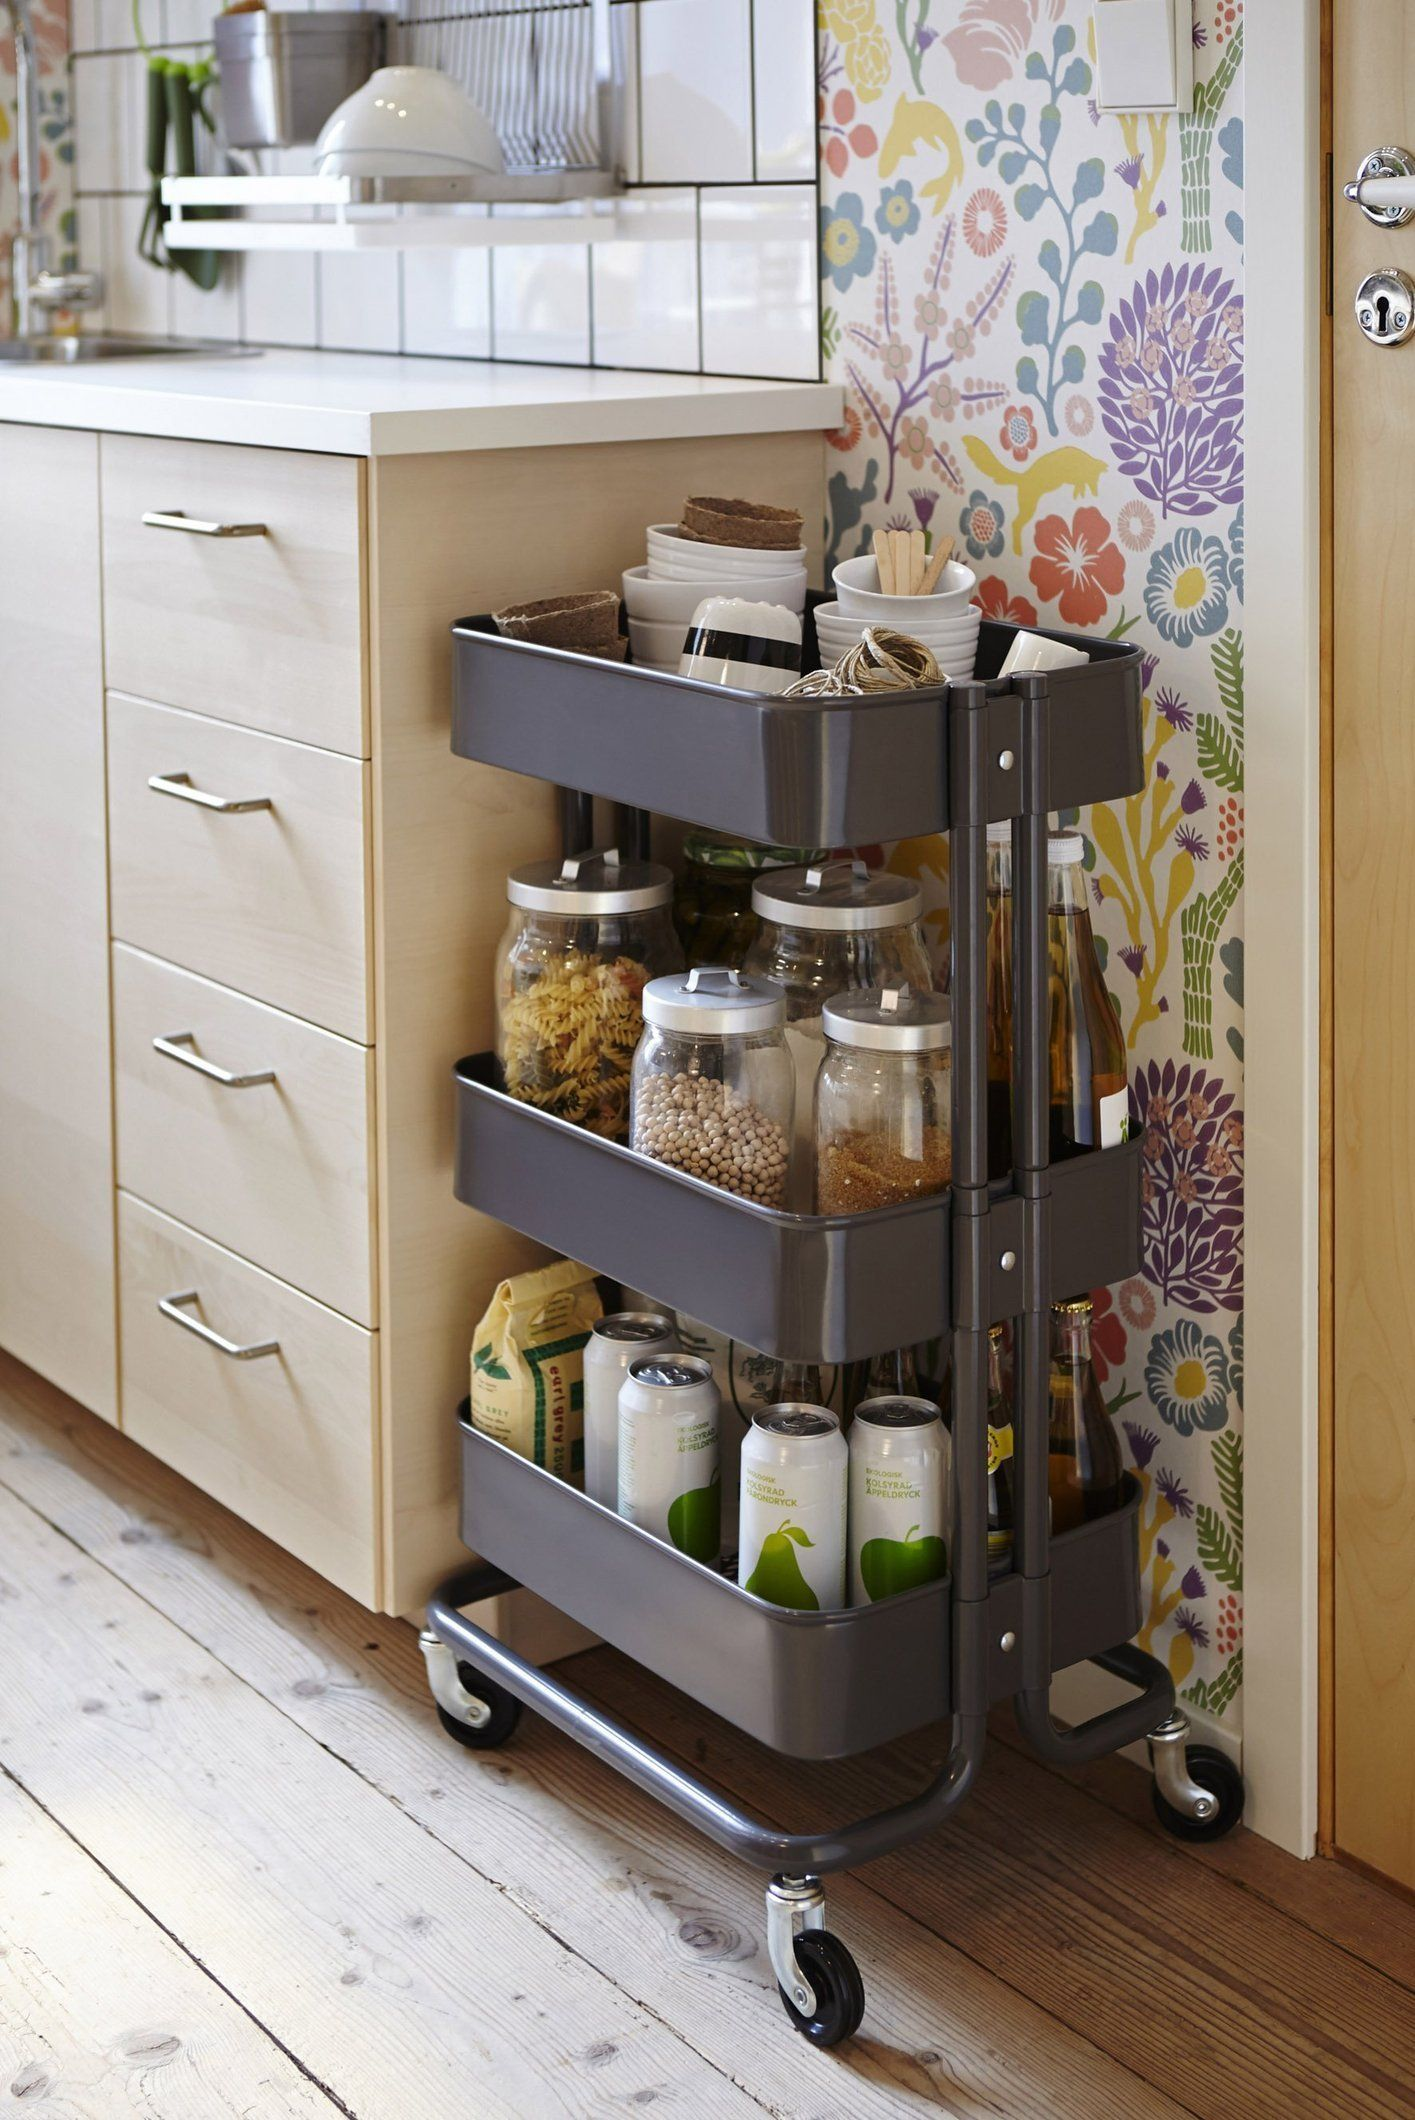 Kitchen Ideas You Can Use 15 ways to use ikea's $30 rÅskog cart around the kitchen — ikea to